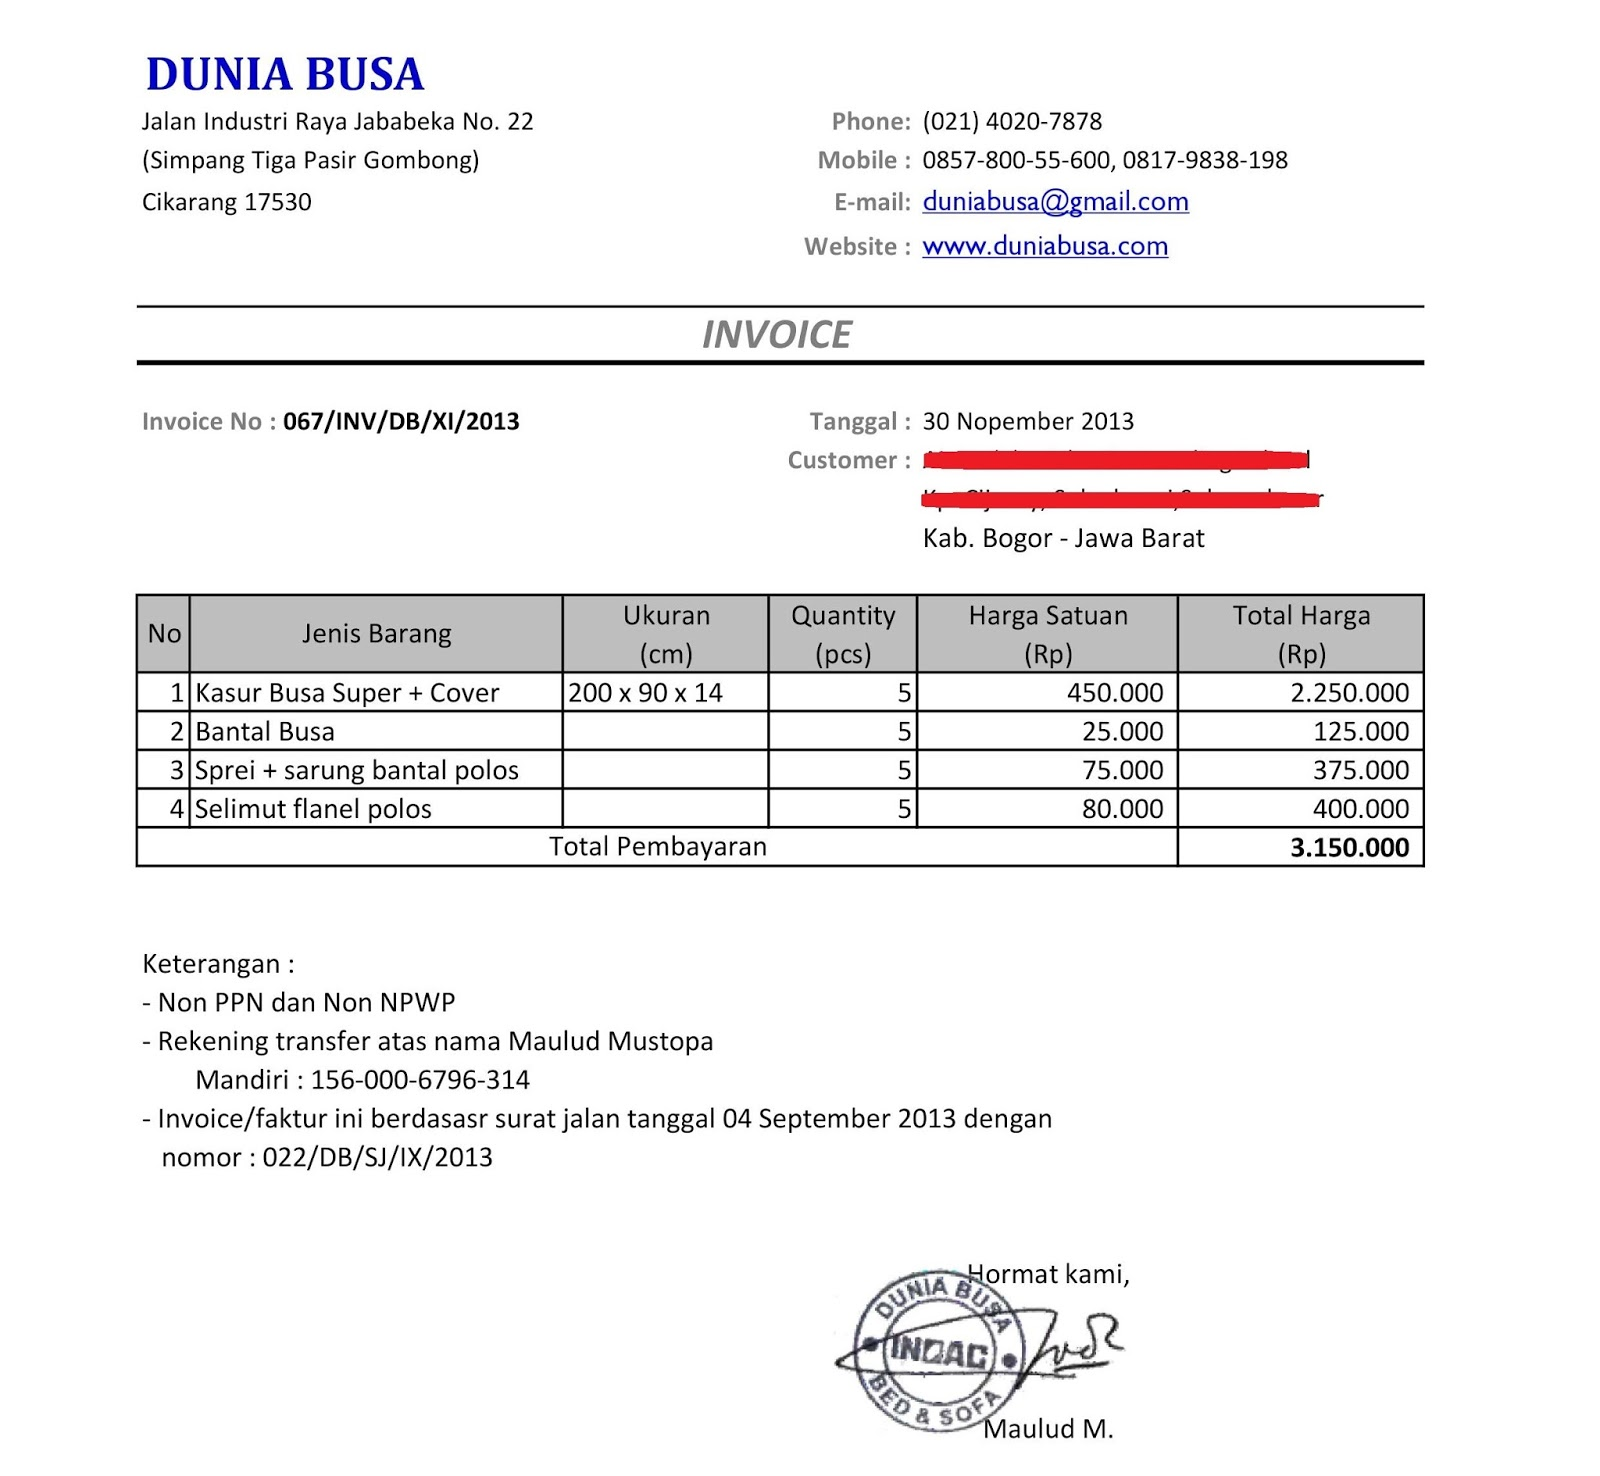 Poorboyzjeepclubus  Prepossessing Free Invoice Online  Create Invoice Online  Invoice Template  With Magnificent Contoh Format Invoice Atau Surat Tagihan  Brankas Arsip  Free Invoice Online With Enchanting Template For A Invoice Also Online Invoice Printing In Addition Meaning Of Invoices And Online Invoice Processing As Well As Pro Forma Invoice Sample Additionally Invoice Issuance From Sklepco With Poorboyzjeepclubus  Magnificent Free Invoice Online  Create Invoice Online  Invoice Template  With Enchanting Contoh Format Invoice Atau Surat Tagihan  Brankas Arsip  Free Invoice Online And Prepossessing Template For A Invoice Also Online Invoice Printing In Addition Meaning Of Invoices From Sklepco